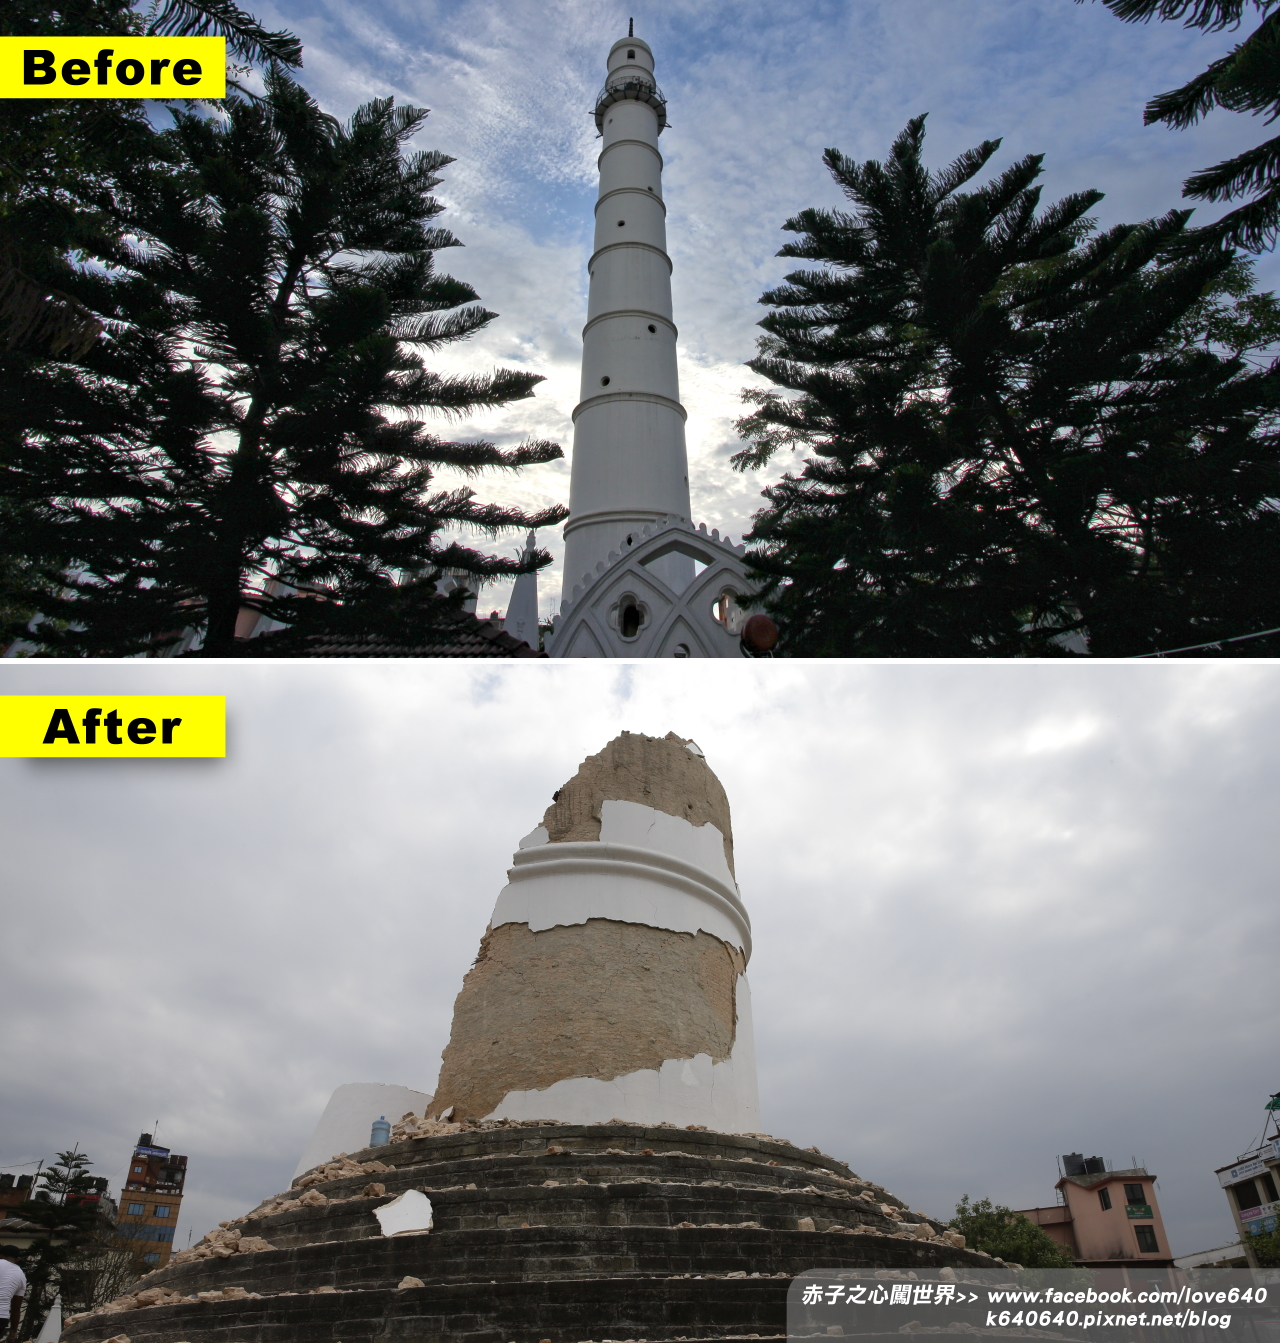 Nepal Kasthamandap earthquake-Bhimsen Tower